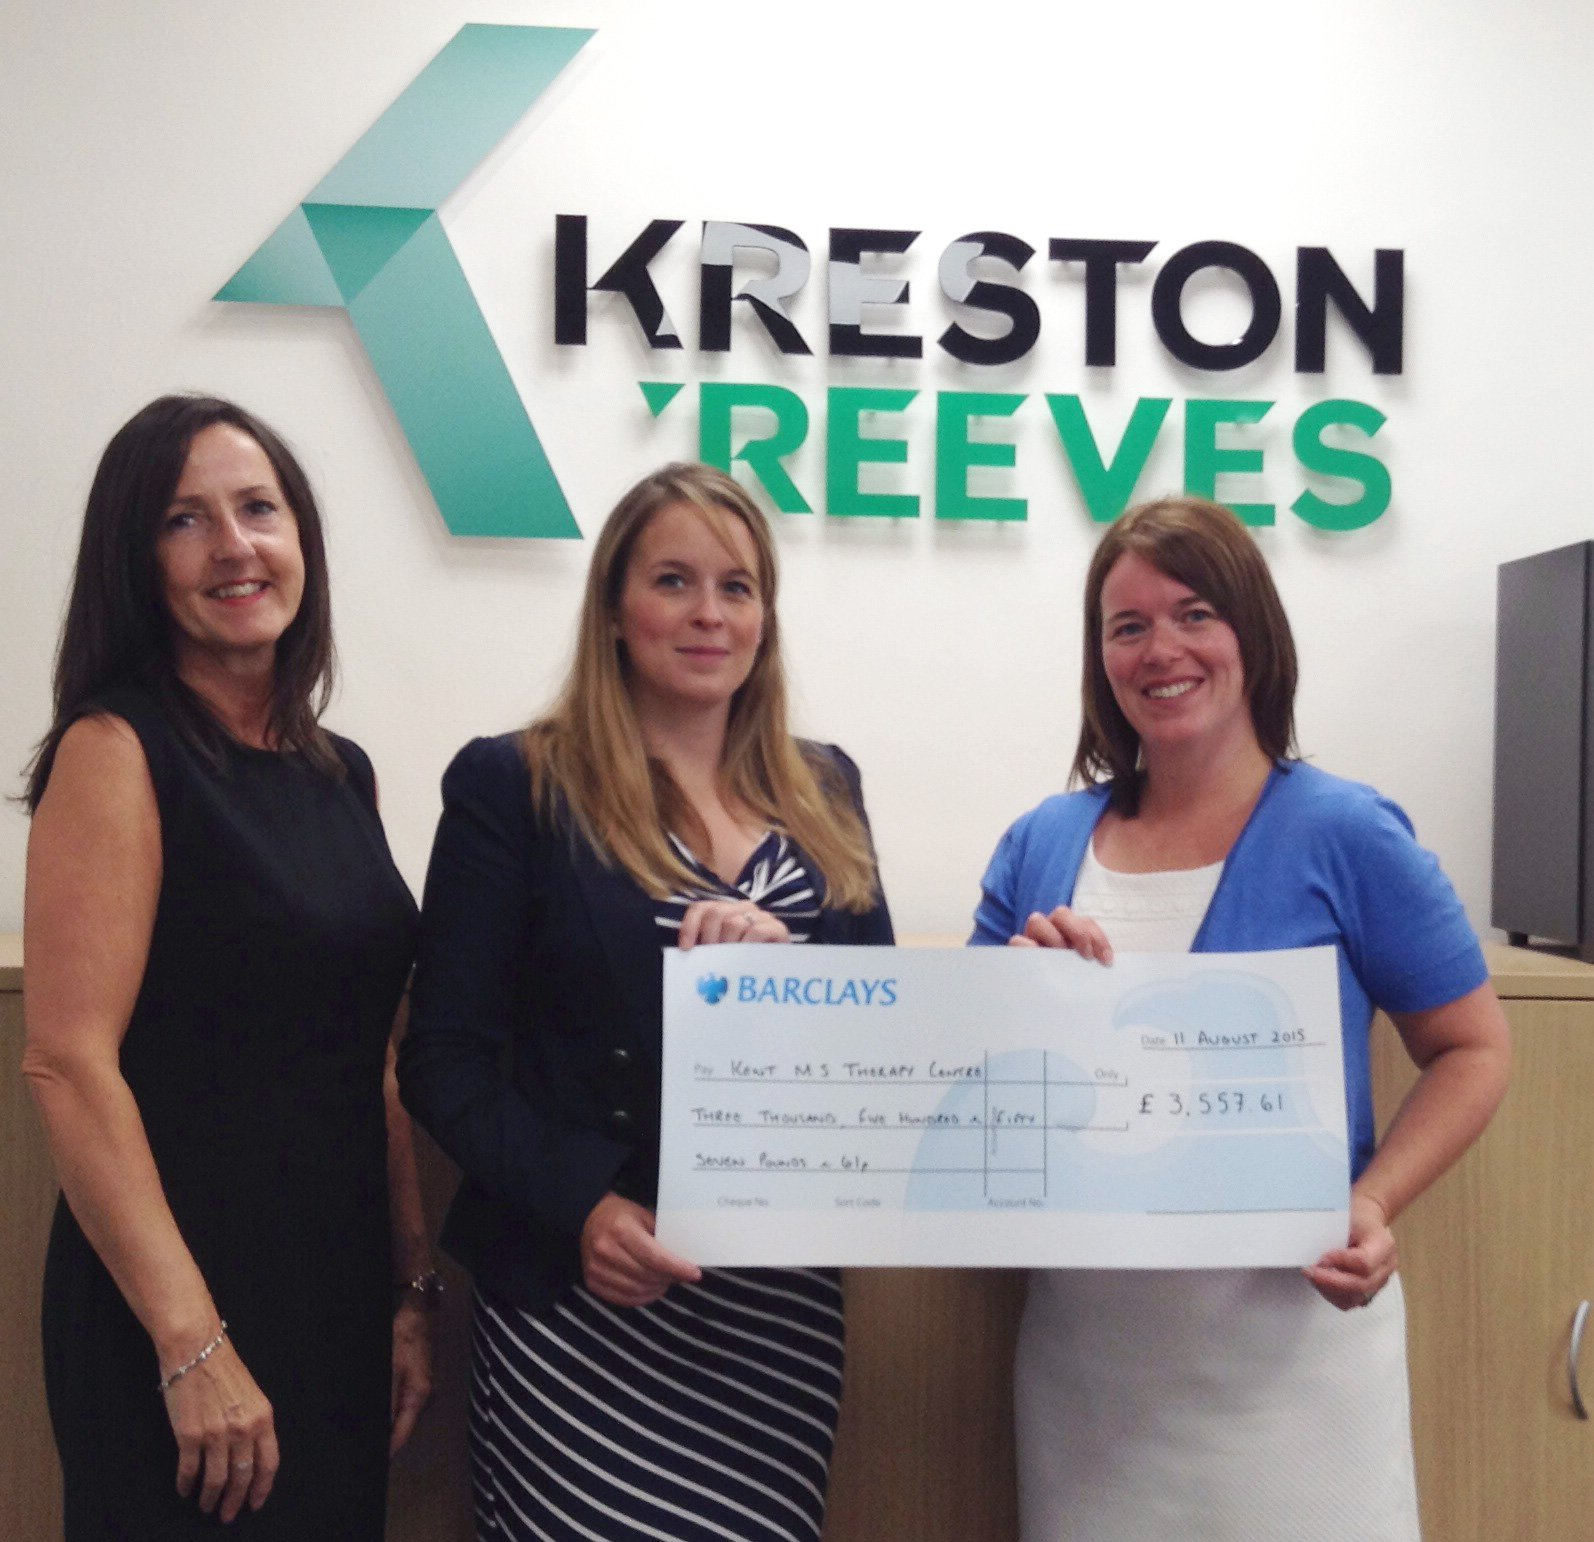 Kreston Reeves fundraising for KMSTC